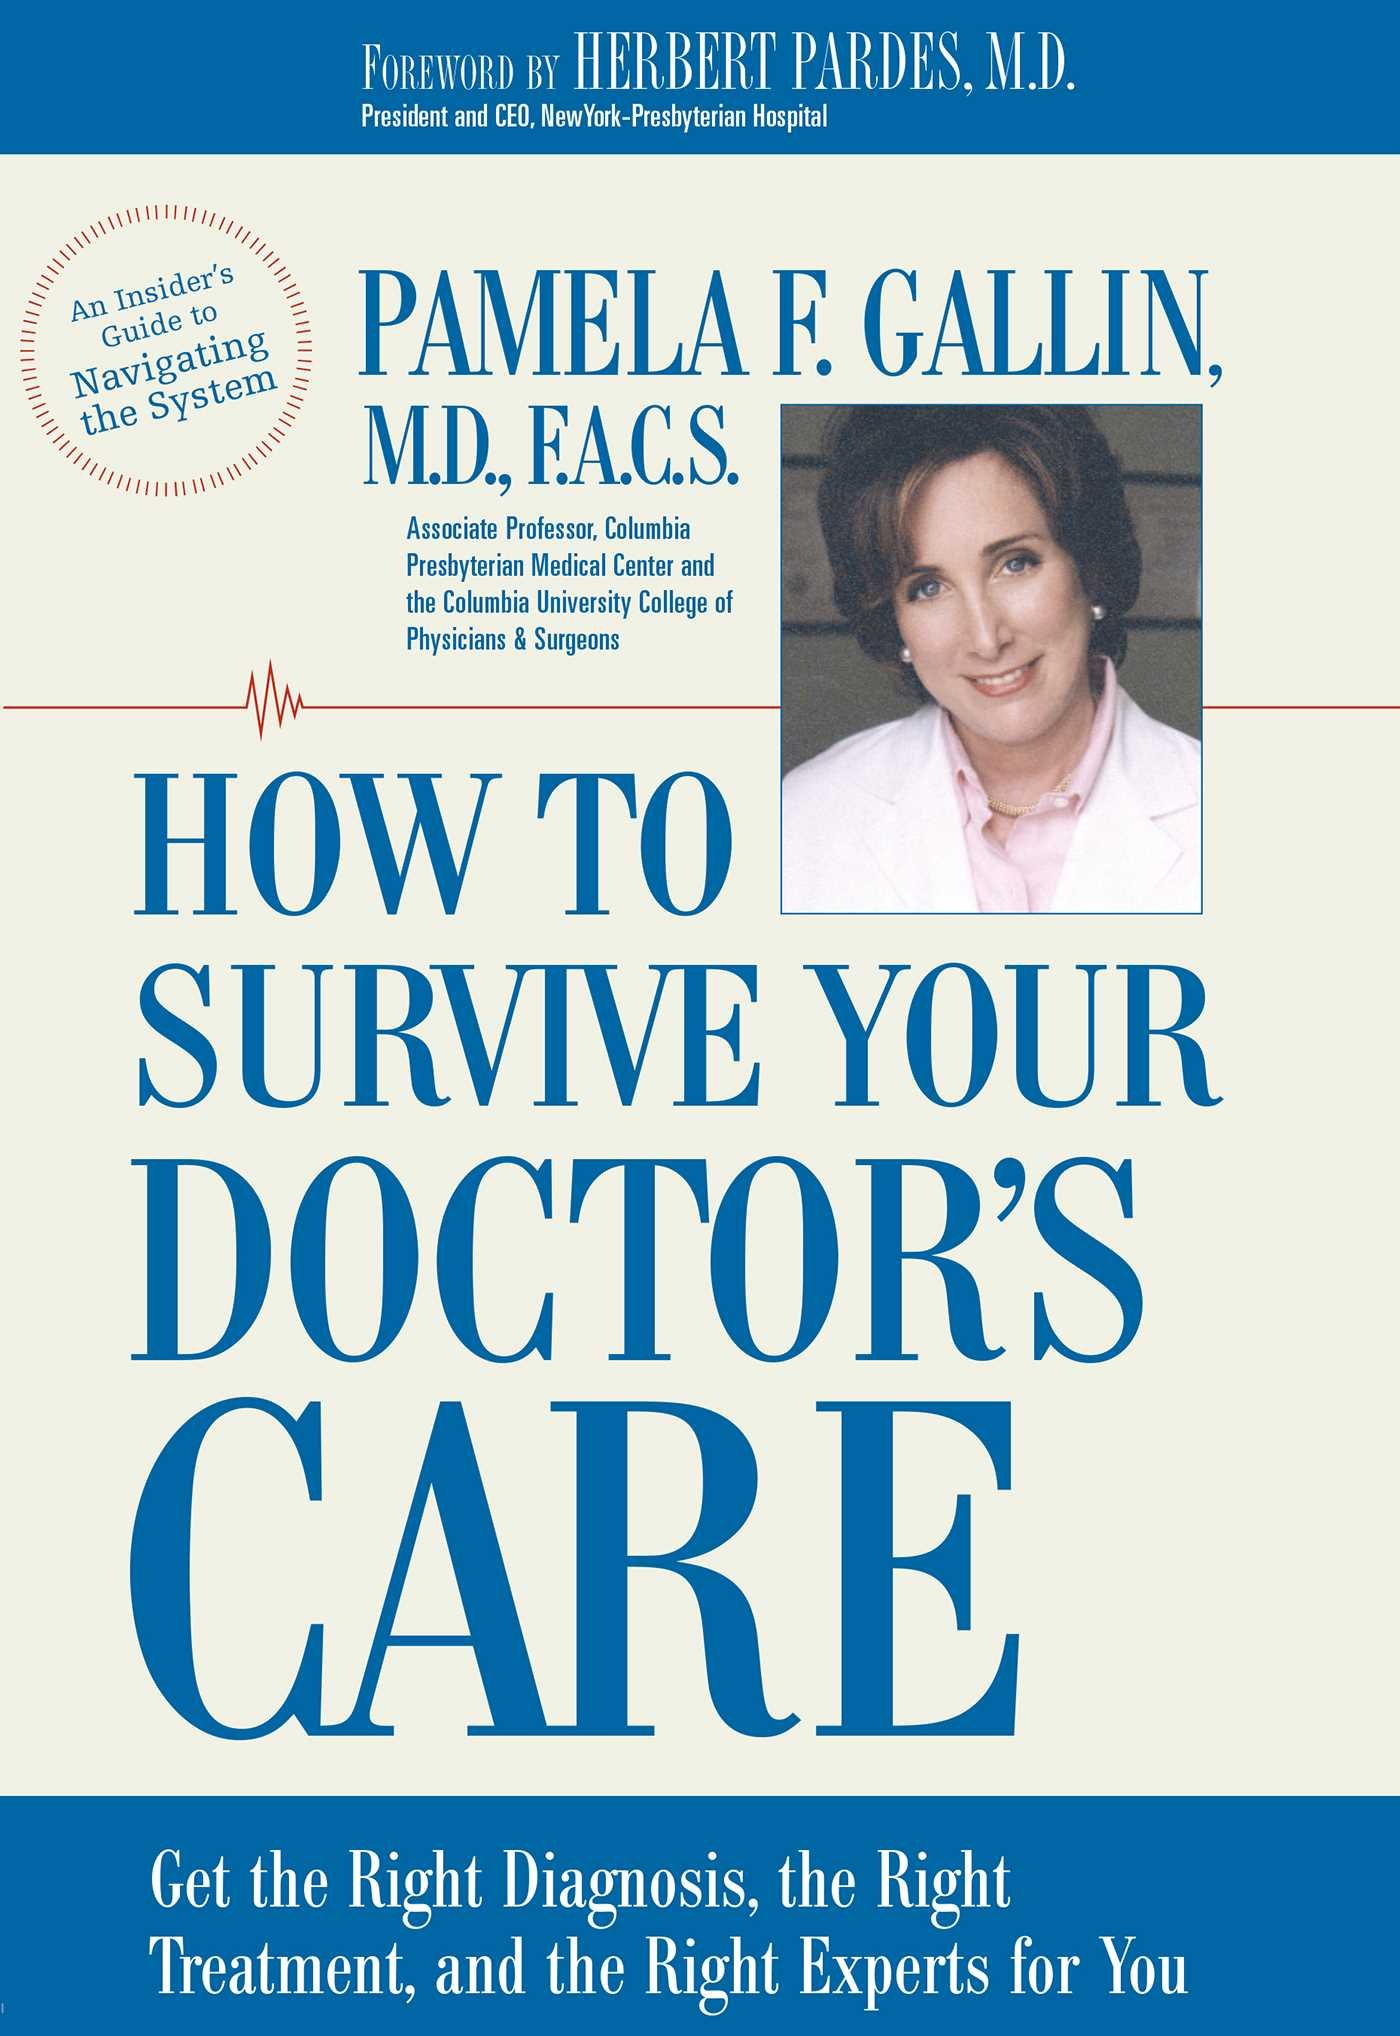 Download How to Survive Your Doctor's Care: Get the Right Diagnosis, the Right Treatment, and the Right Experts for You. PDF